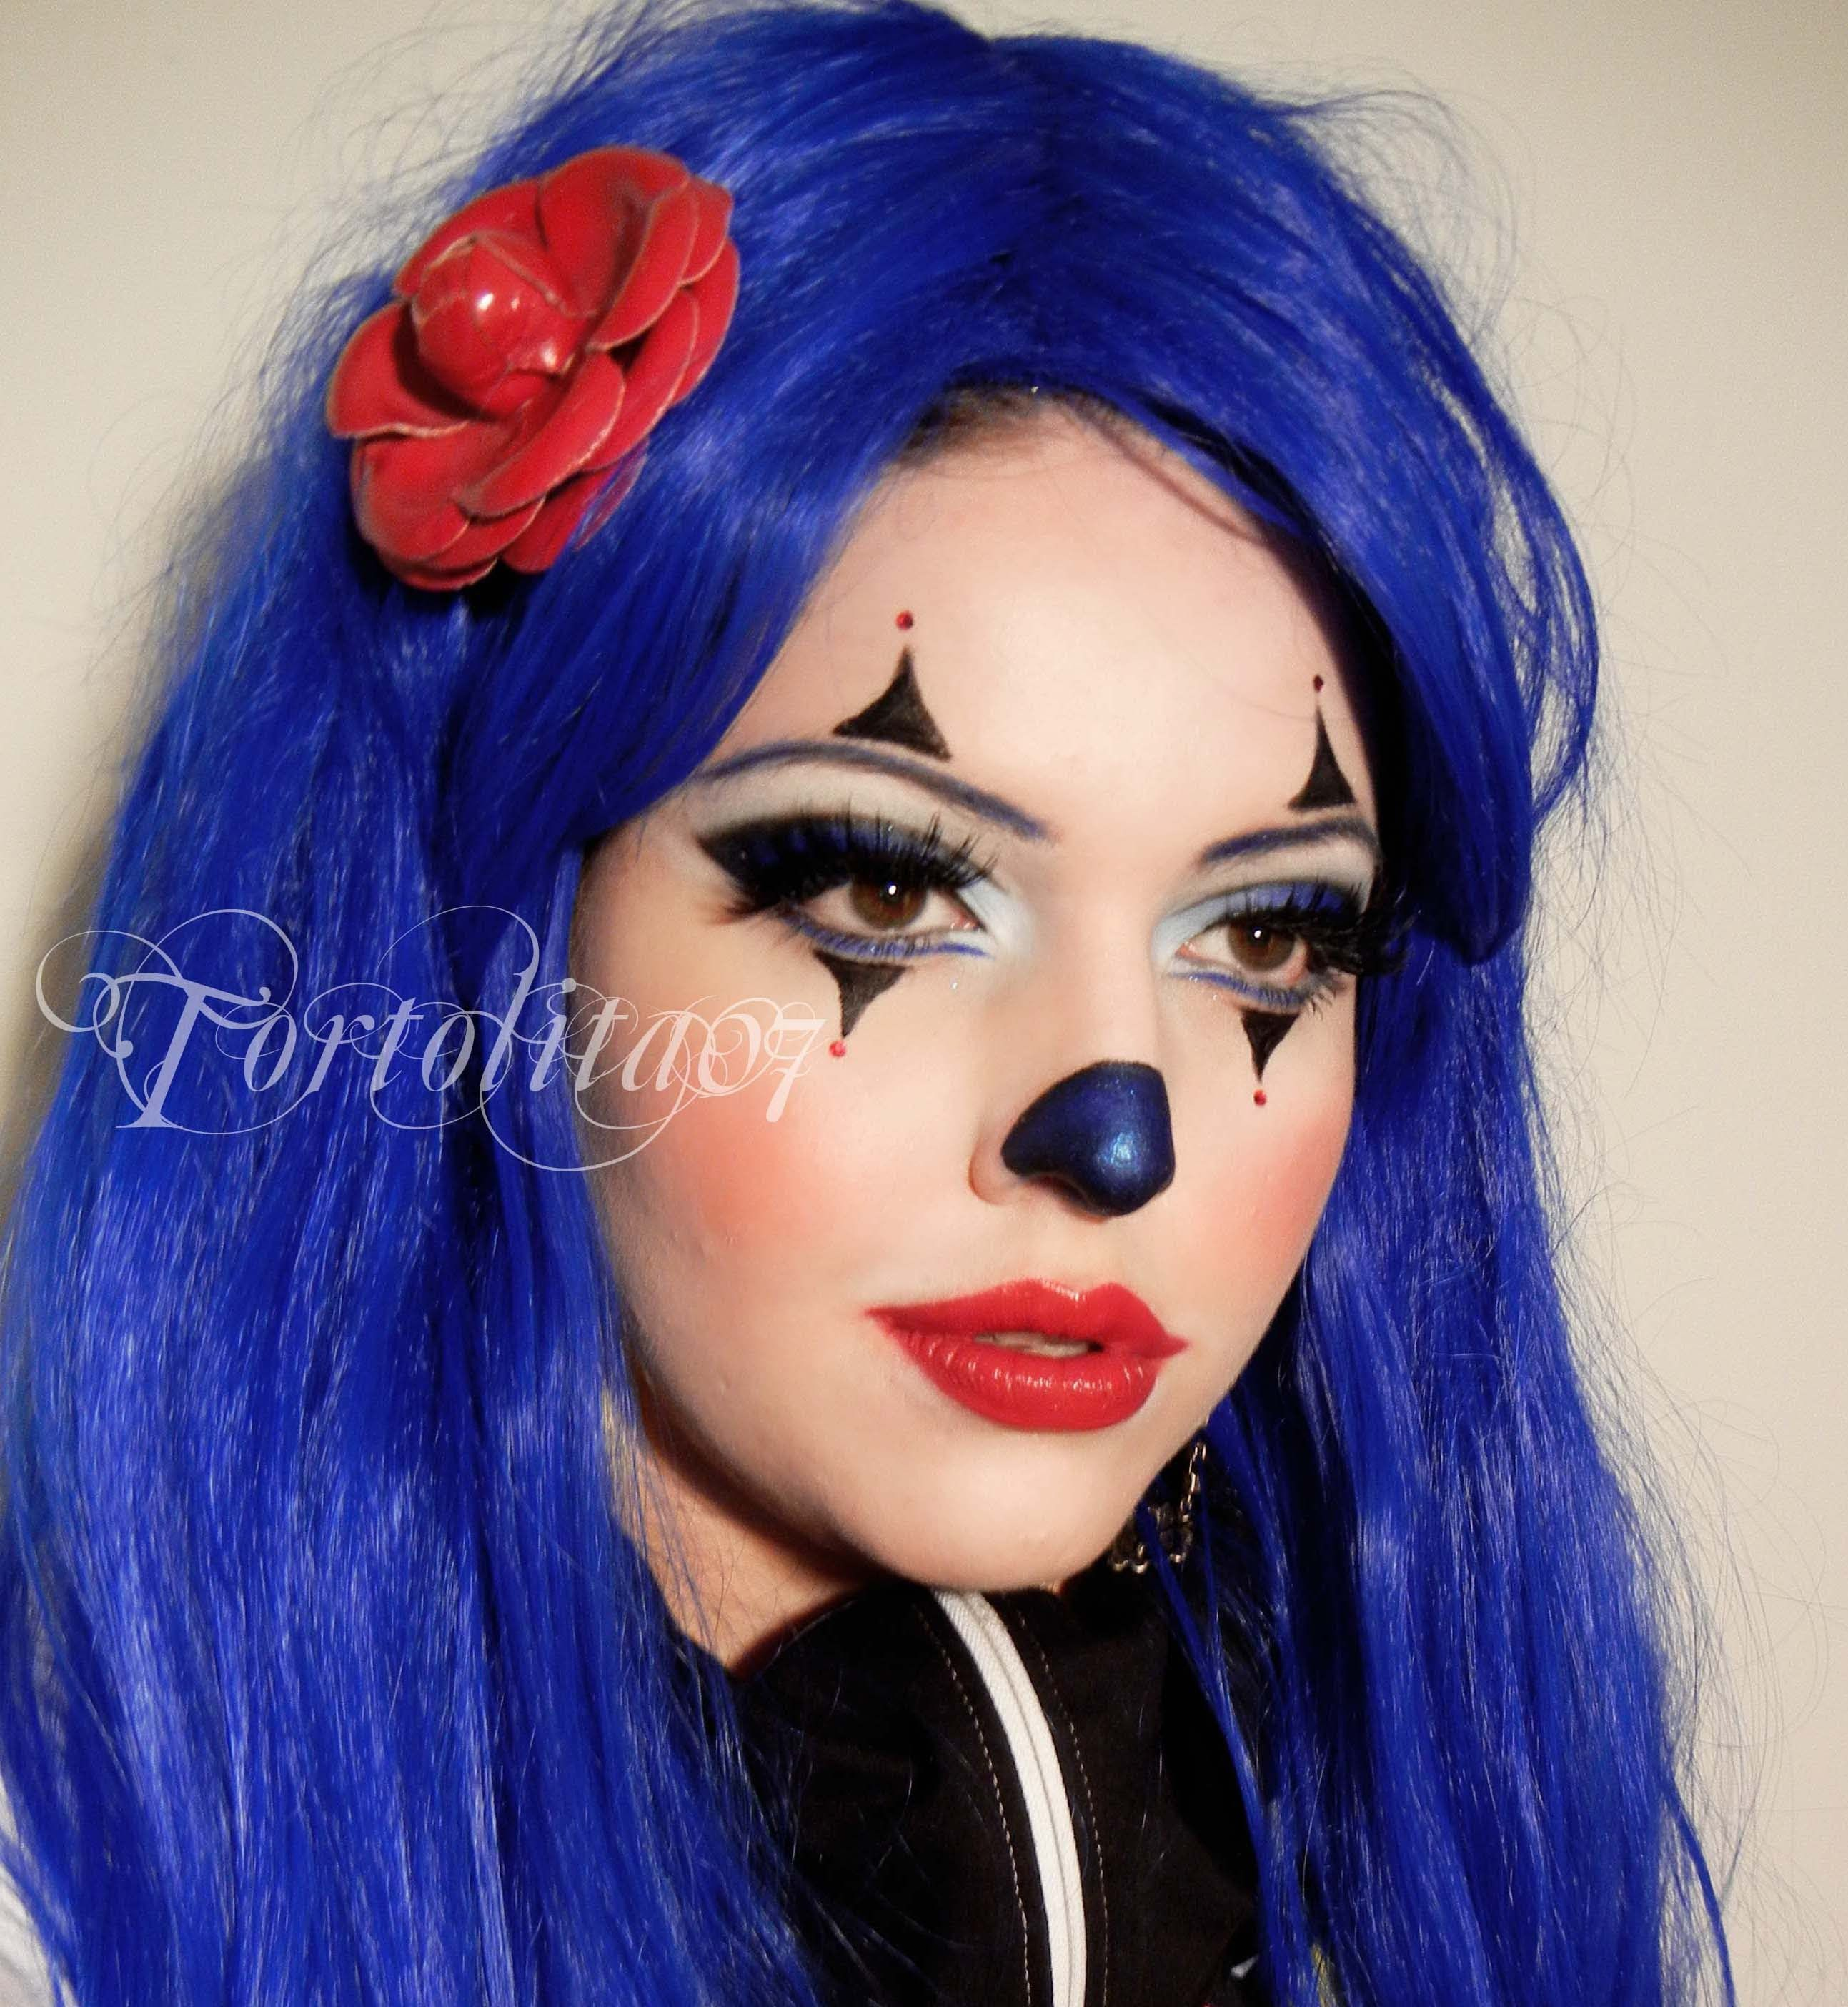 best 25 cute clown makeup ideas on pinterest cute clown clown costume diy and mime costume. Black Bedroom Furniture Sets. Home Design Ideas